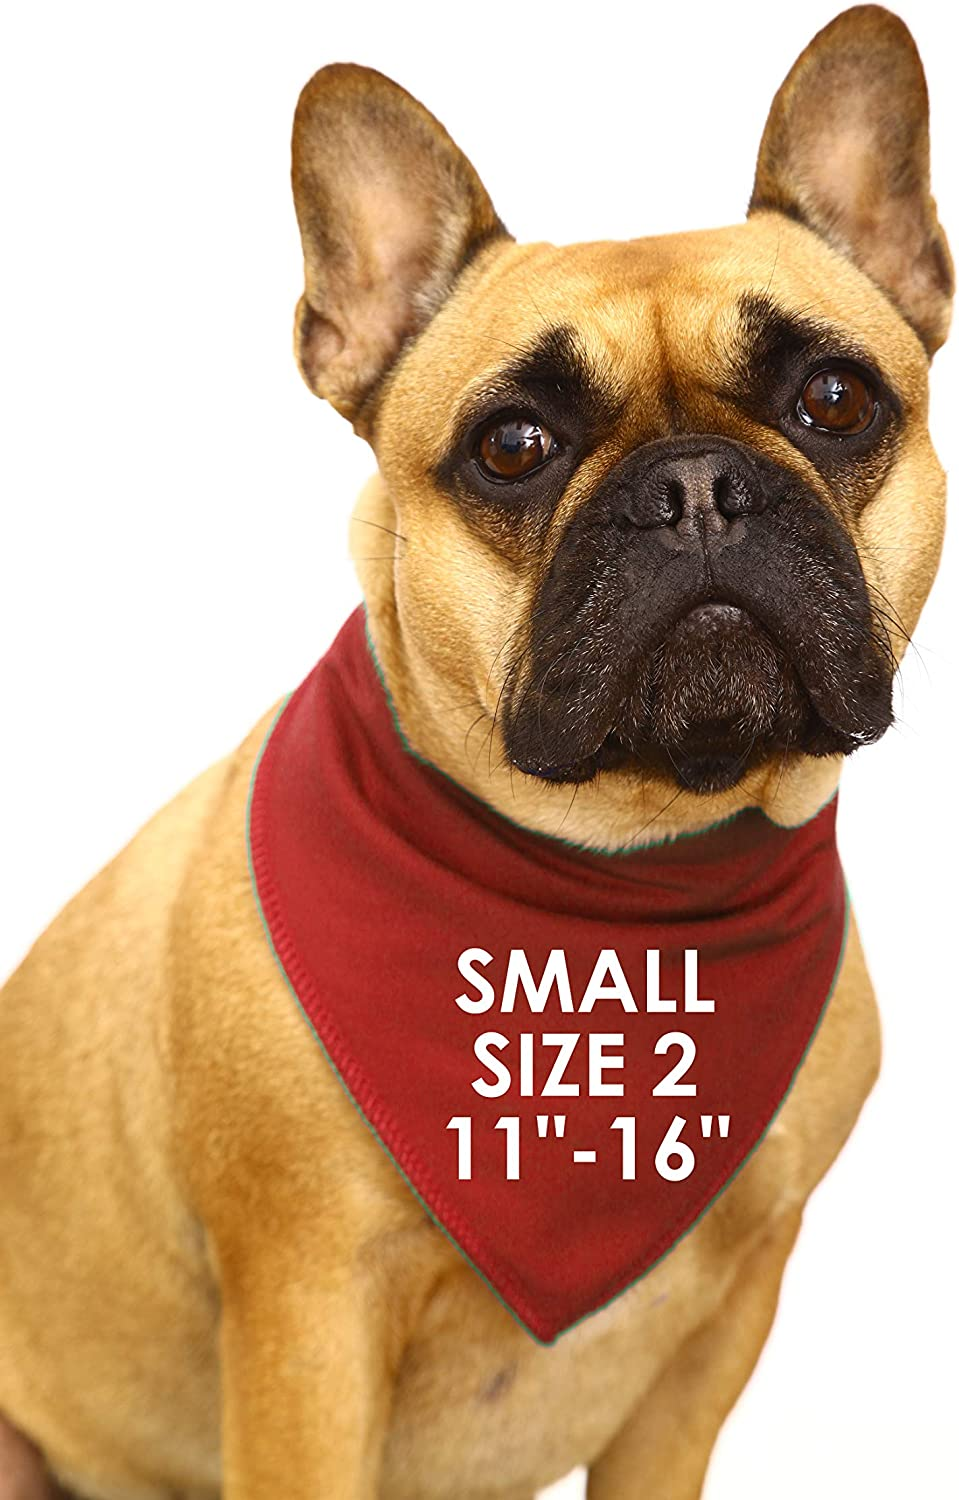 Small Dogs Shih-tzu Terriers /& Cockerpoo Dog Costume For Baby Showers /& Photo Reveal S2 Guard Dog Personalised With Baby Due Date Red Dog Bandana